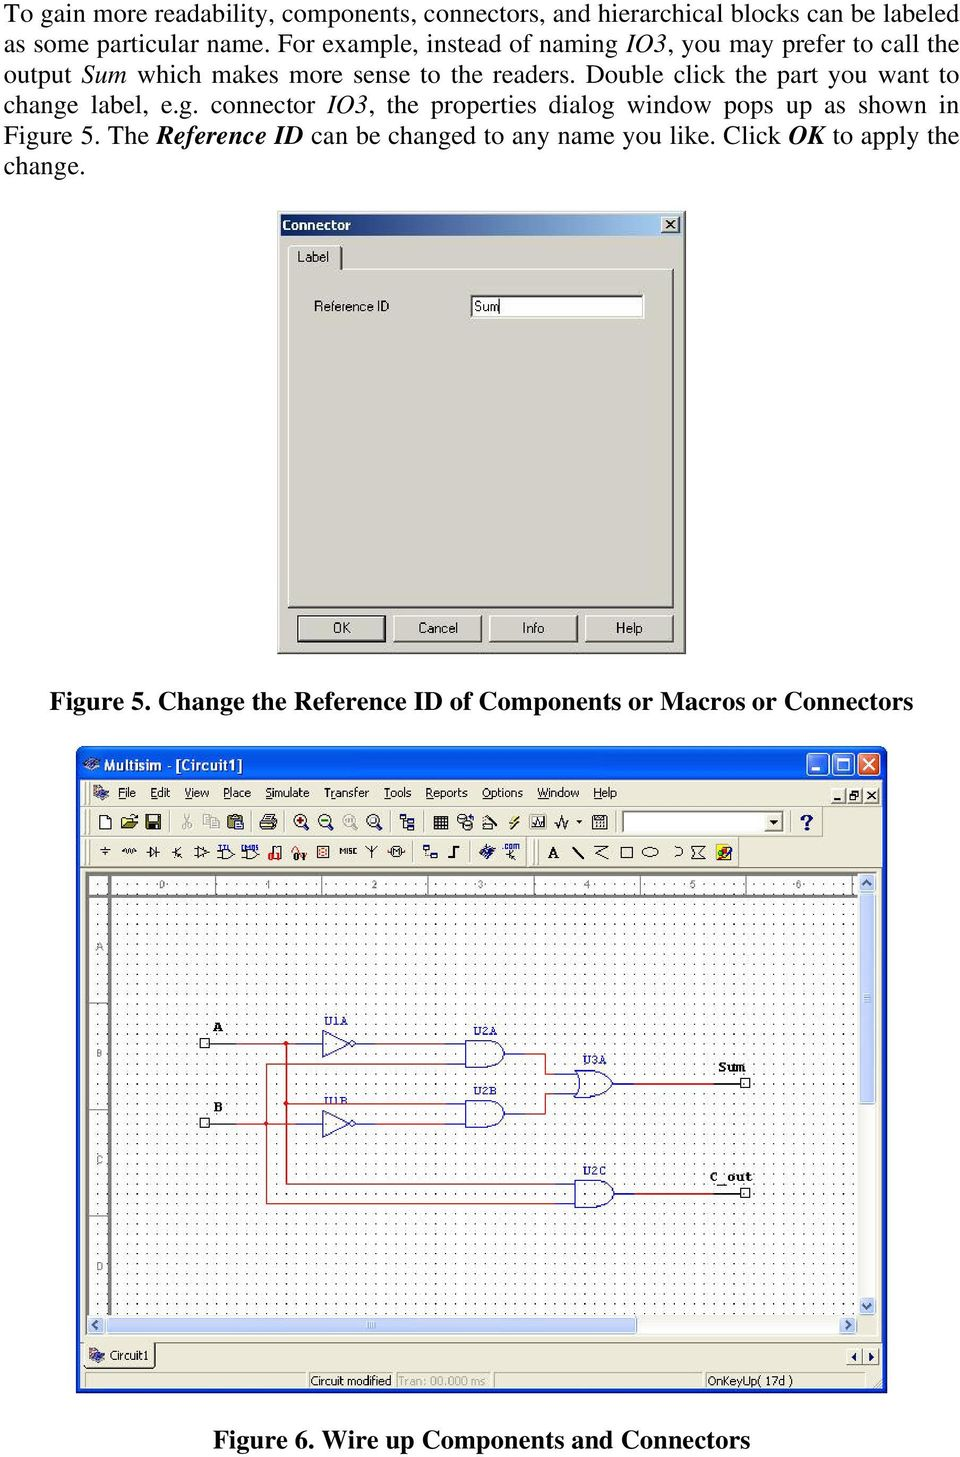 Multisim 7 Tutorial Creating Macros For Sub Circuits Pdf Relay Circuit In Double Click The Part You Want To Change Label Eg Connector Io3 Properties